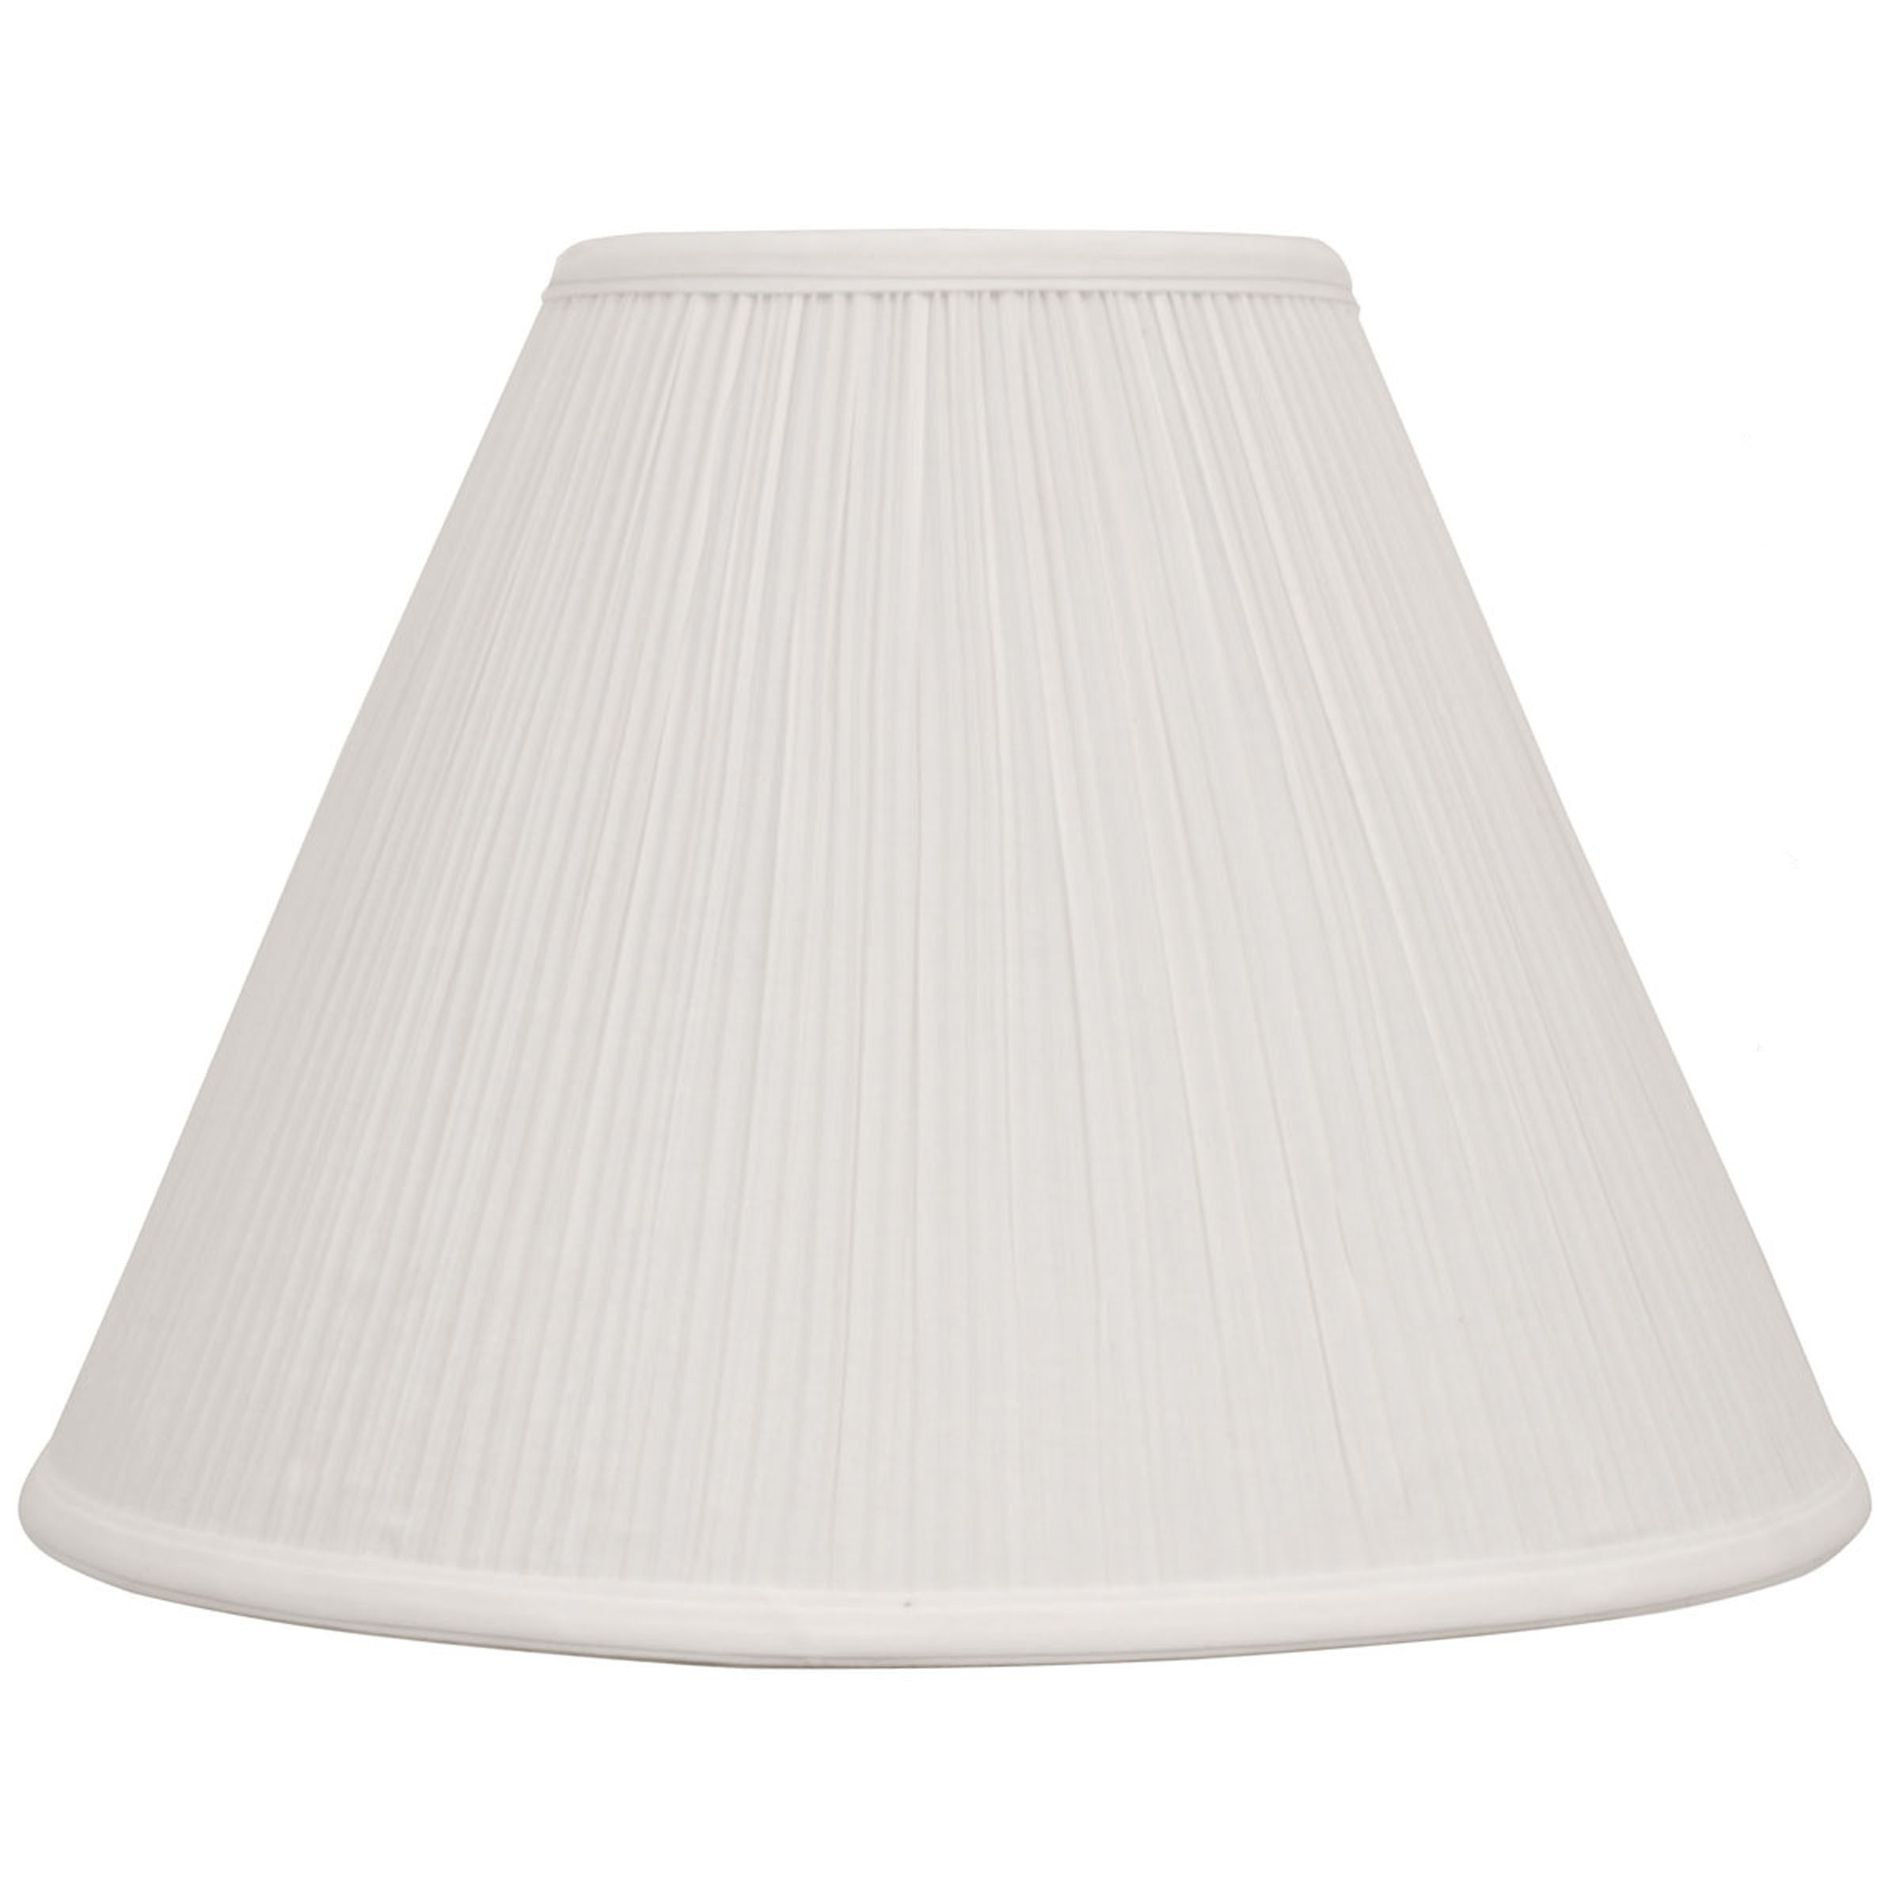 Essential Home  Lamp Shade White Pleat Cone